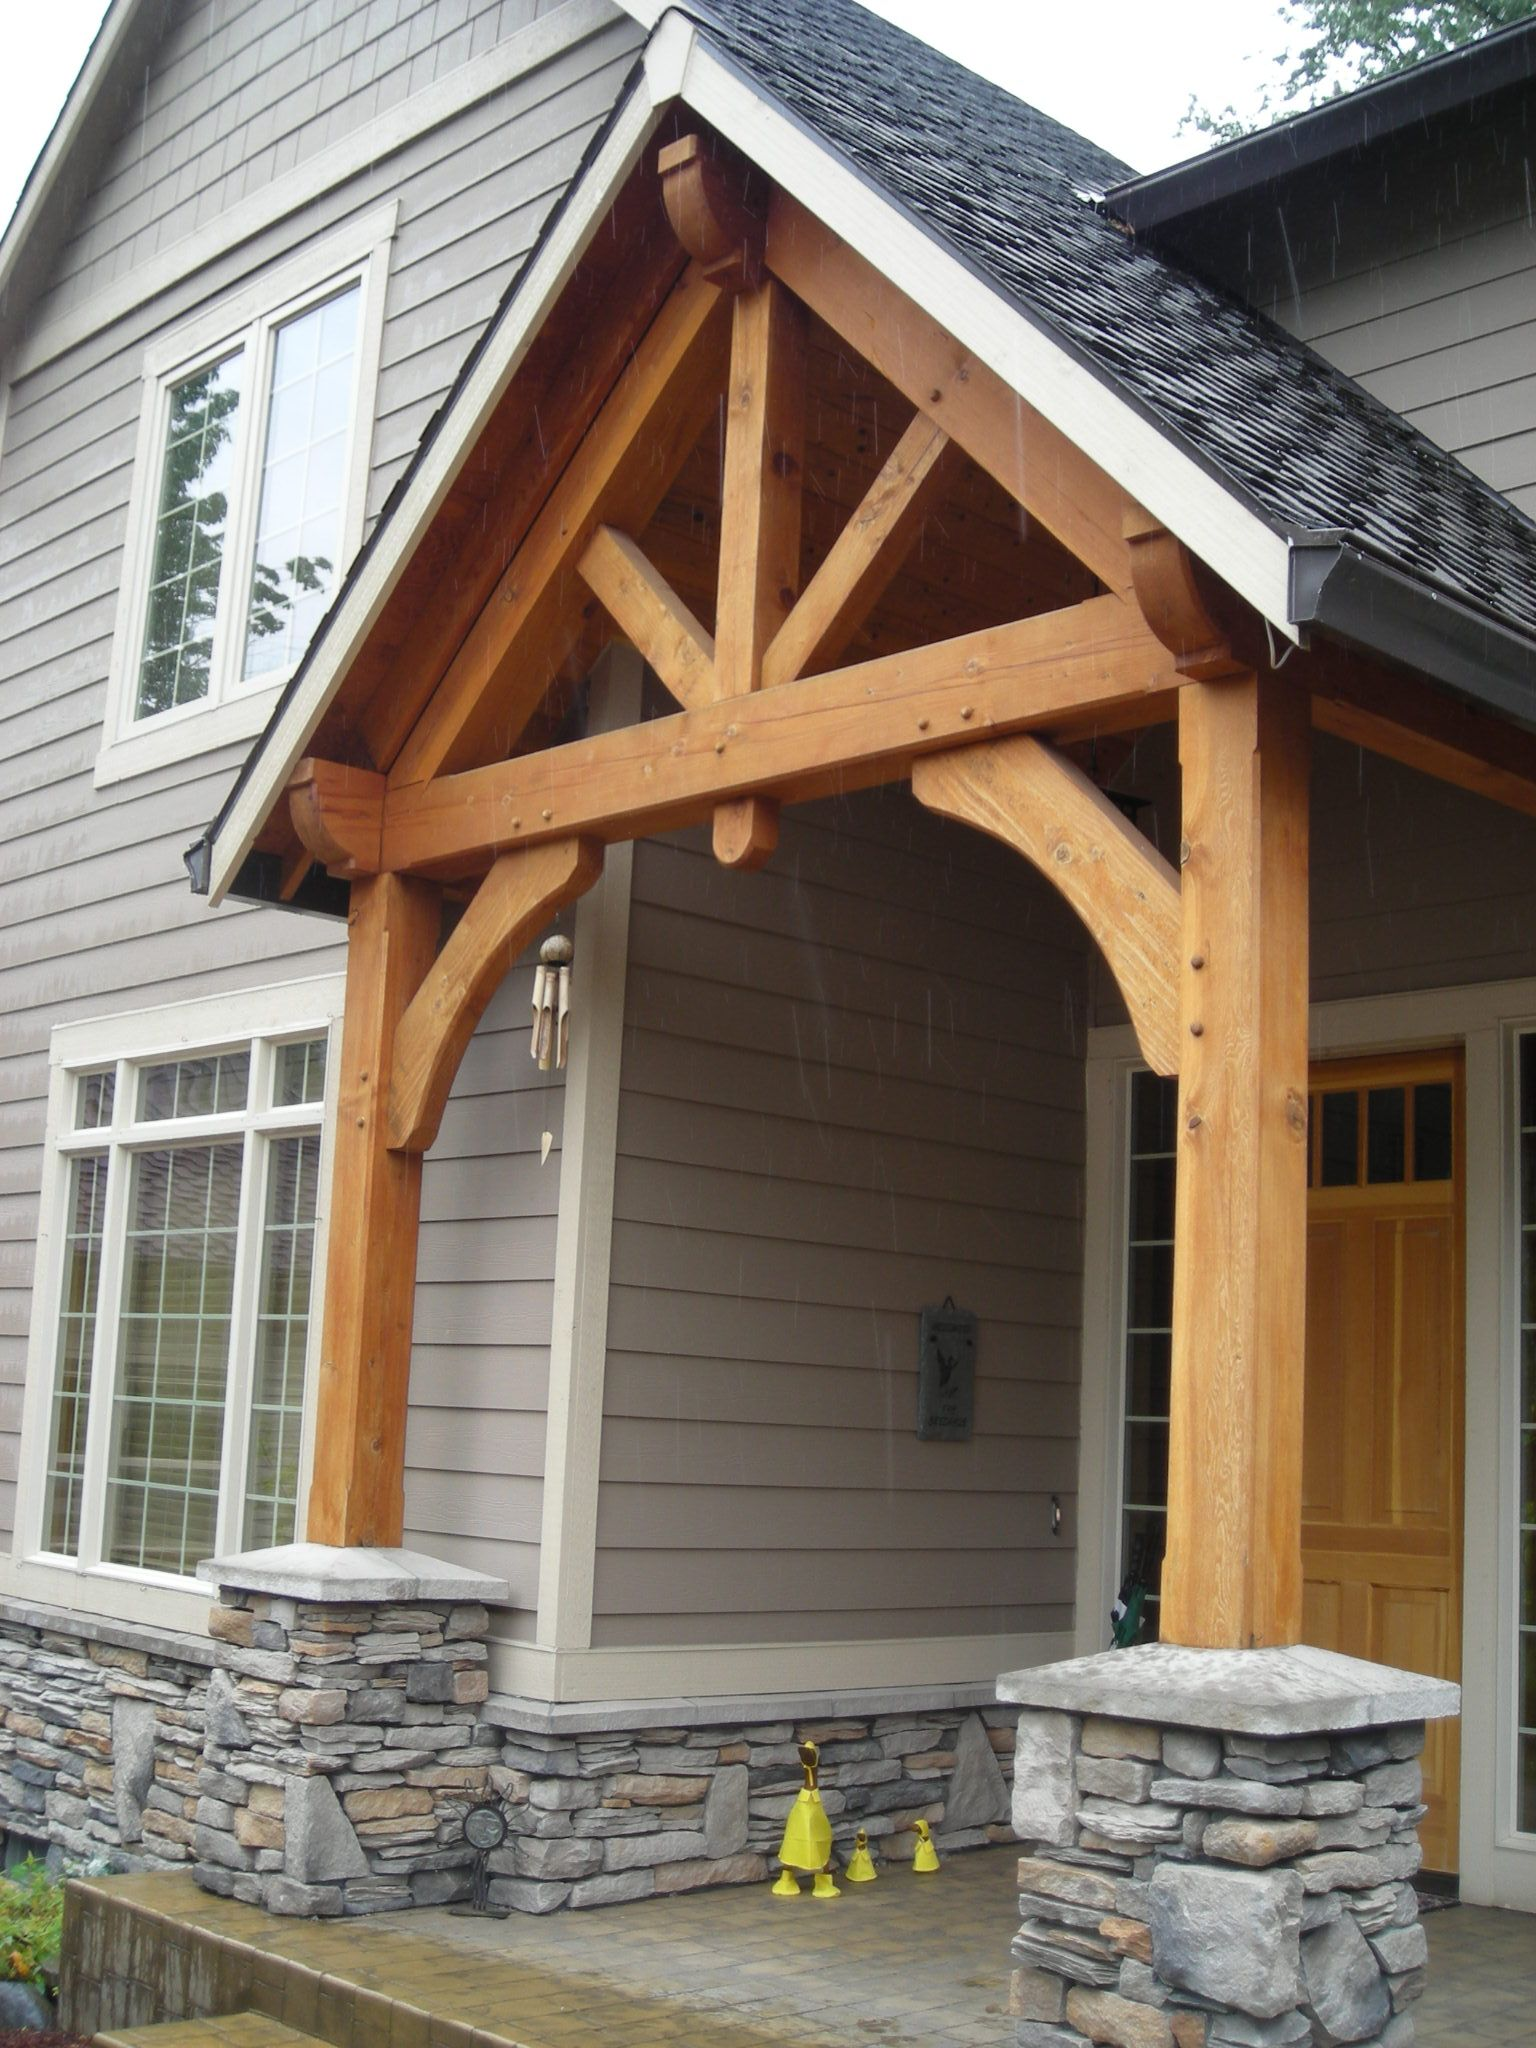 Timber frame entry timber frame entry pinterest for Timber frame porch designs